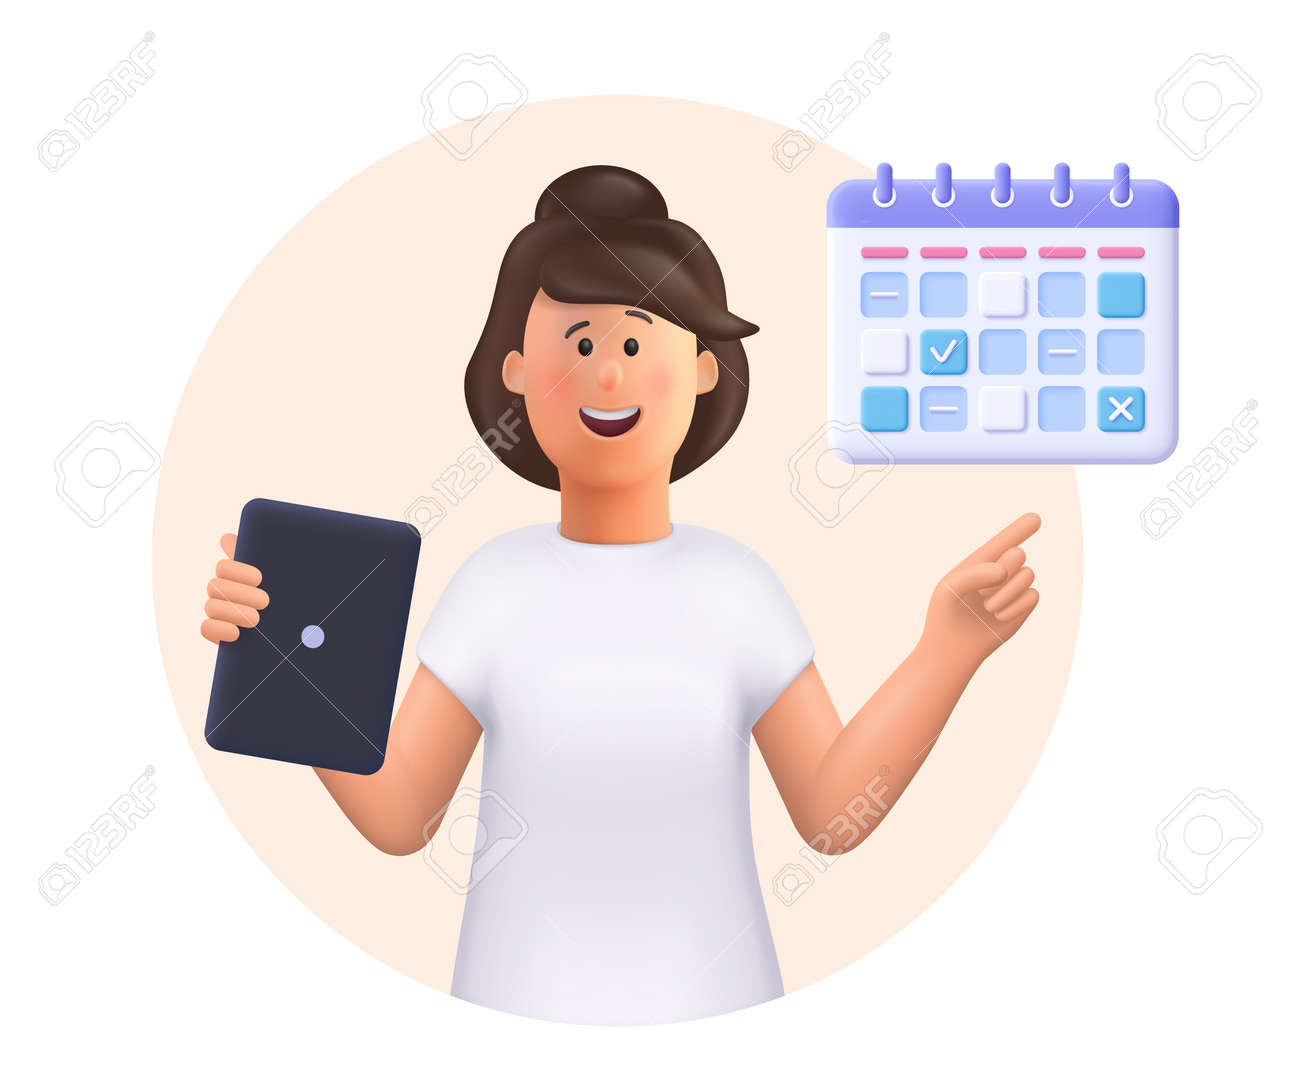 Young woman Jane holding tablet, showing plan schedule, planning day scheduling appointment in calendar application. Business planning, events, reminder and timetable.3d vector people illustration. - 171273078